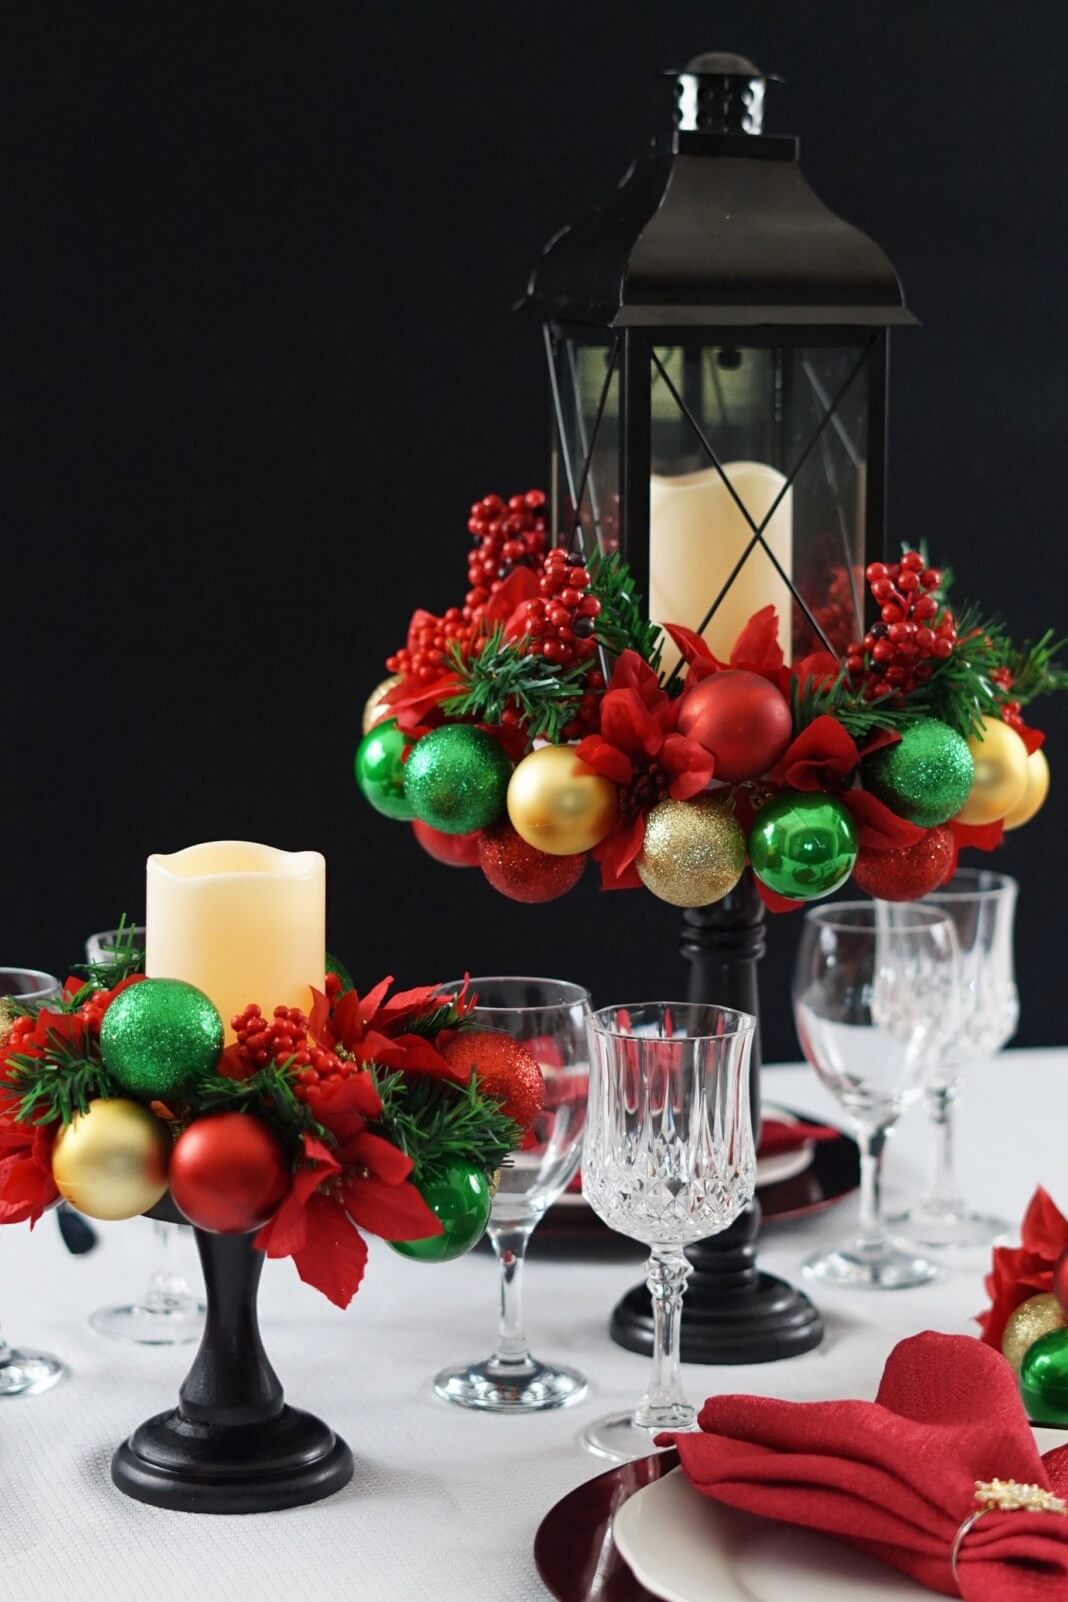 Raised Lantern and Christmas Ornament Centerpiece